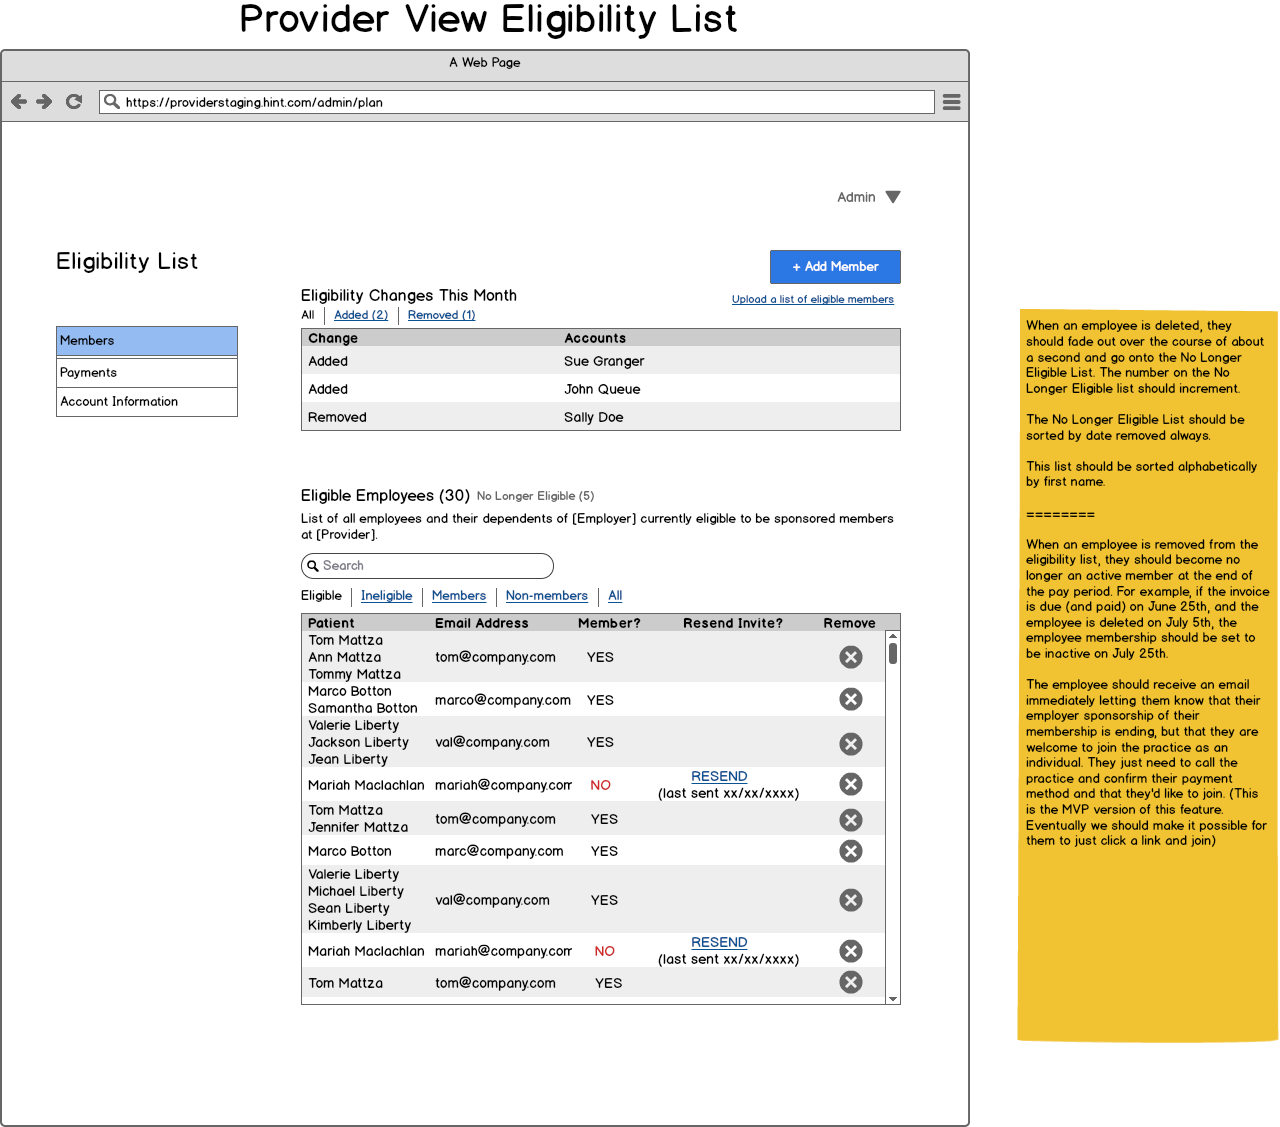 Healthcare Provider View of the Eligibility List